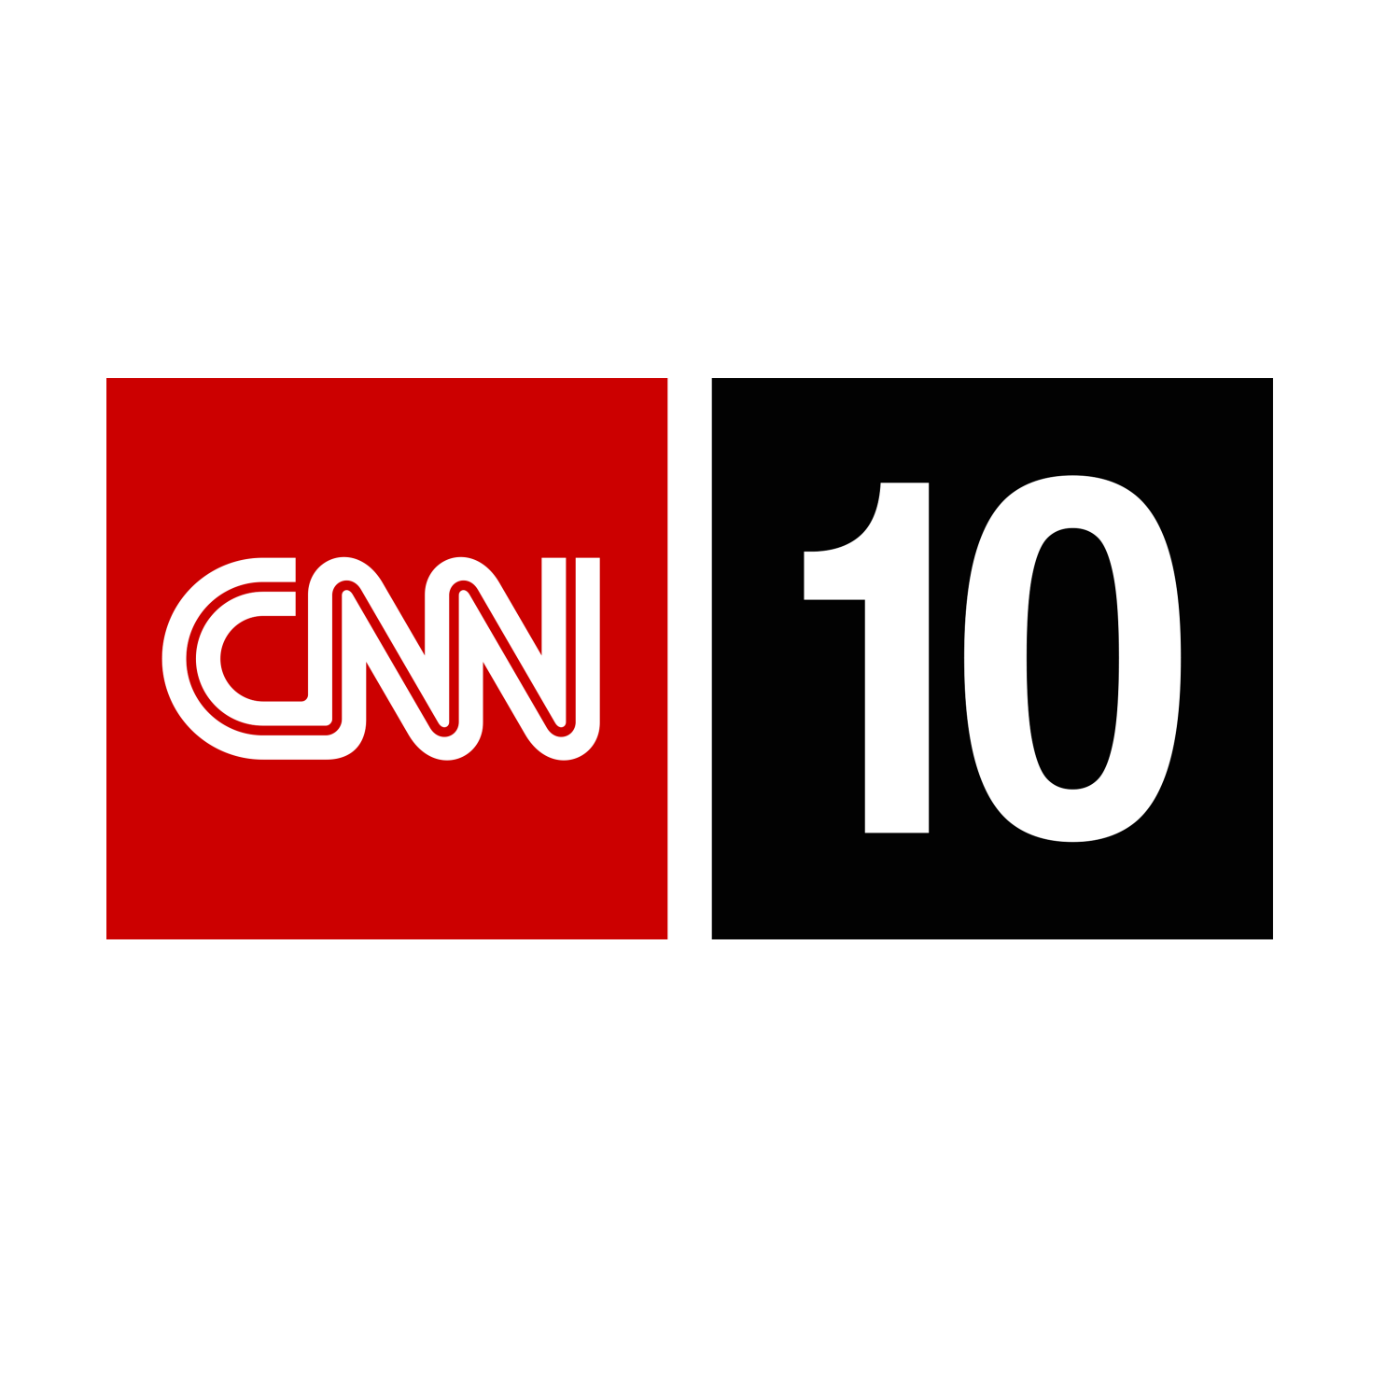 CNN Student News - January 9, 2013